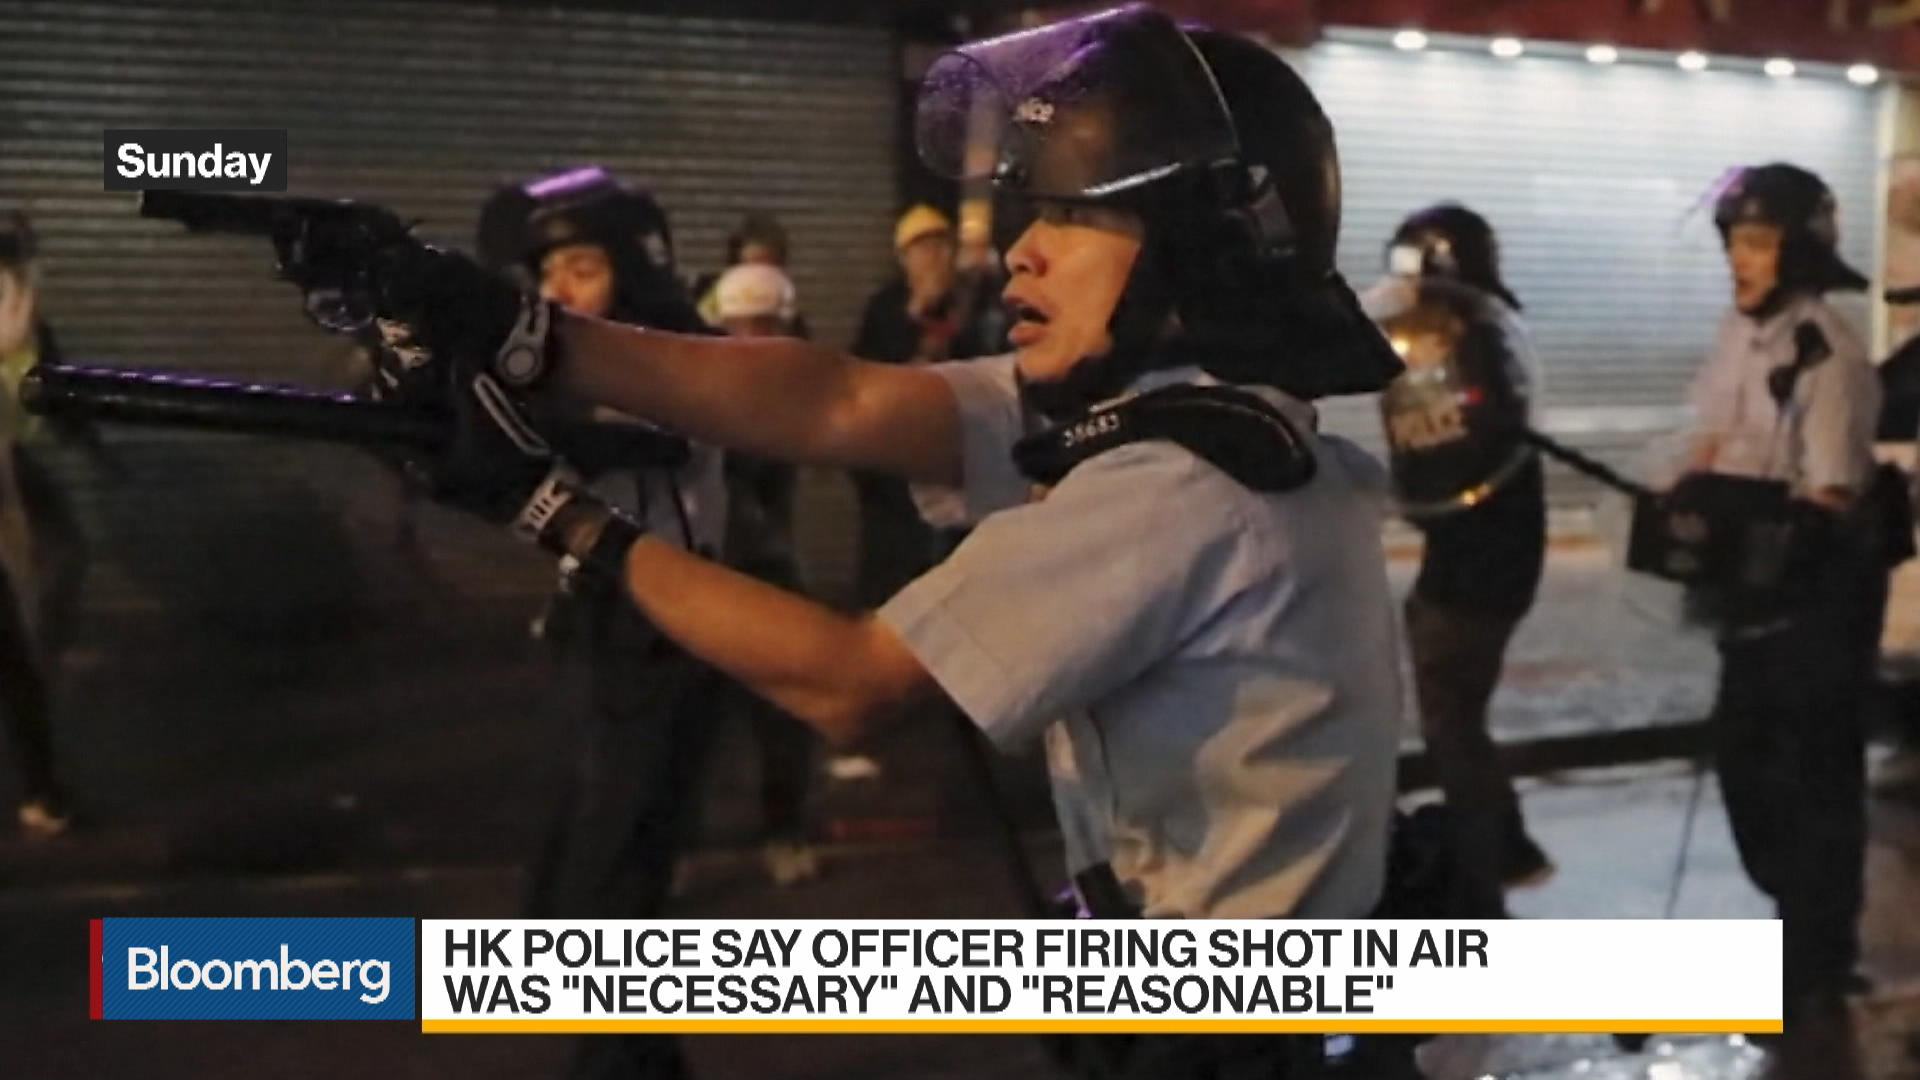 Tensions in Hong Kong Escalate; Police Fire Weapon